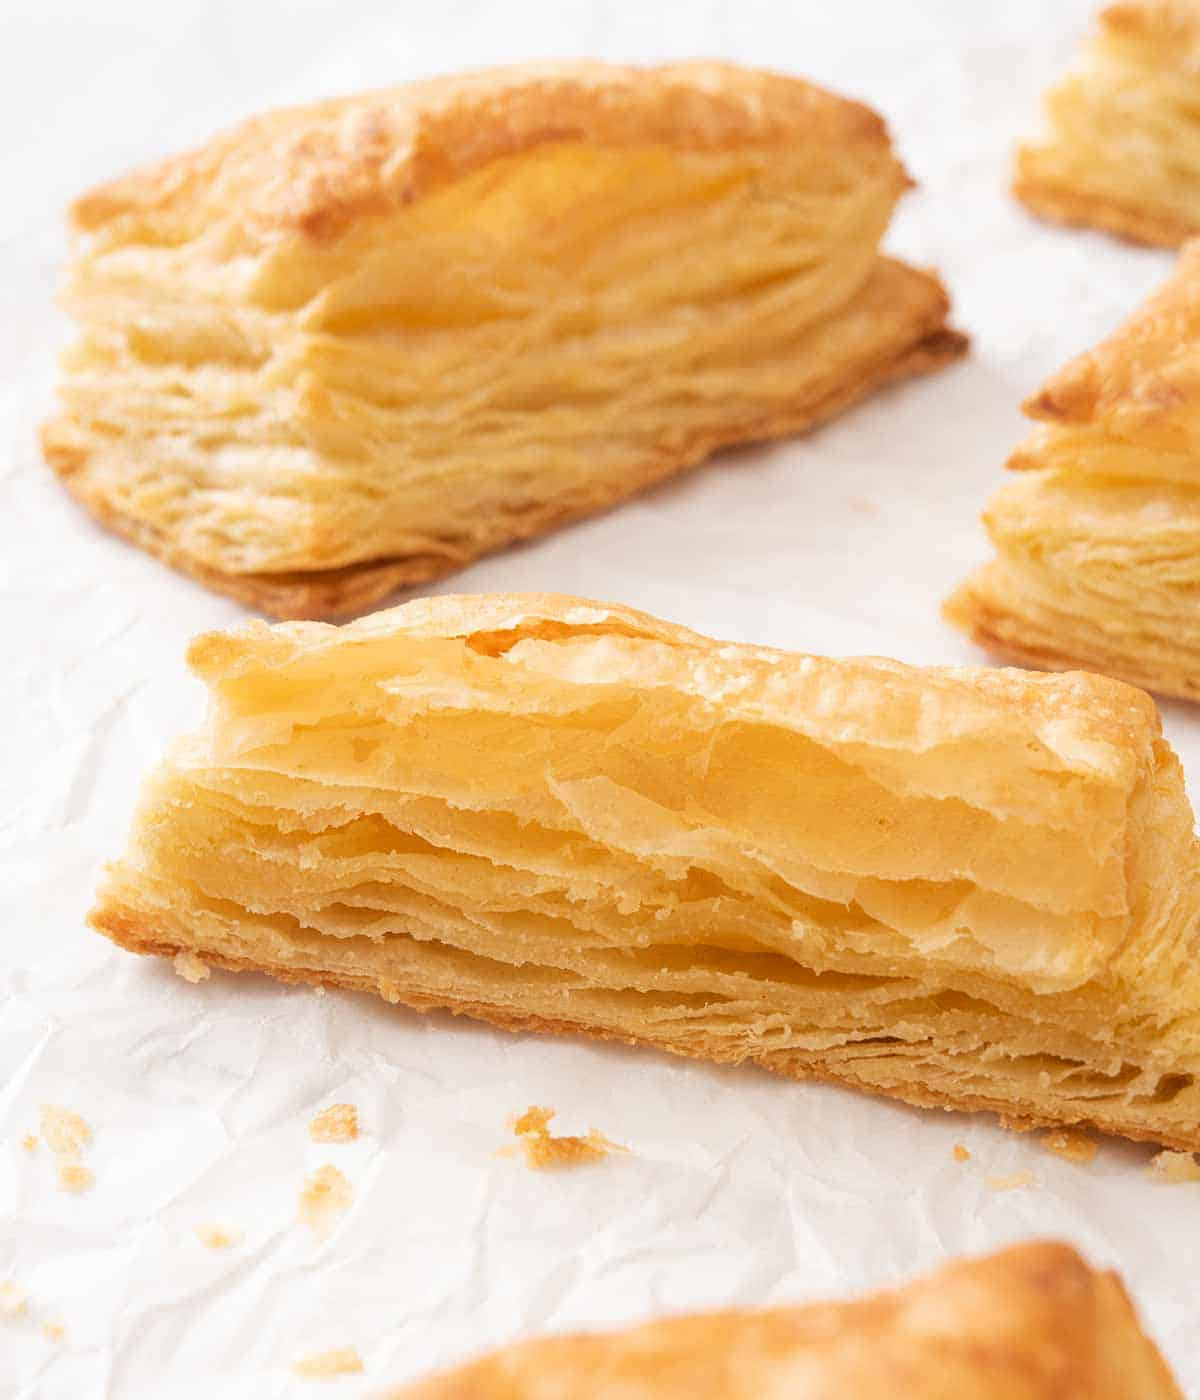 Puff pastry on a white surface with one cut in half, showing the flaky layers.